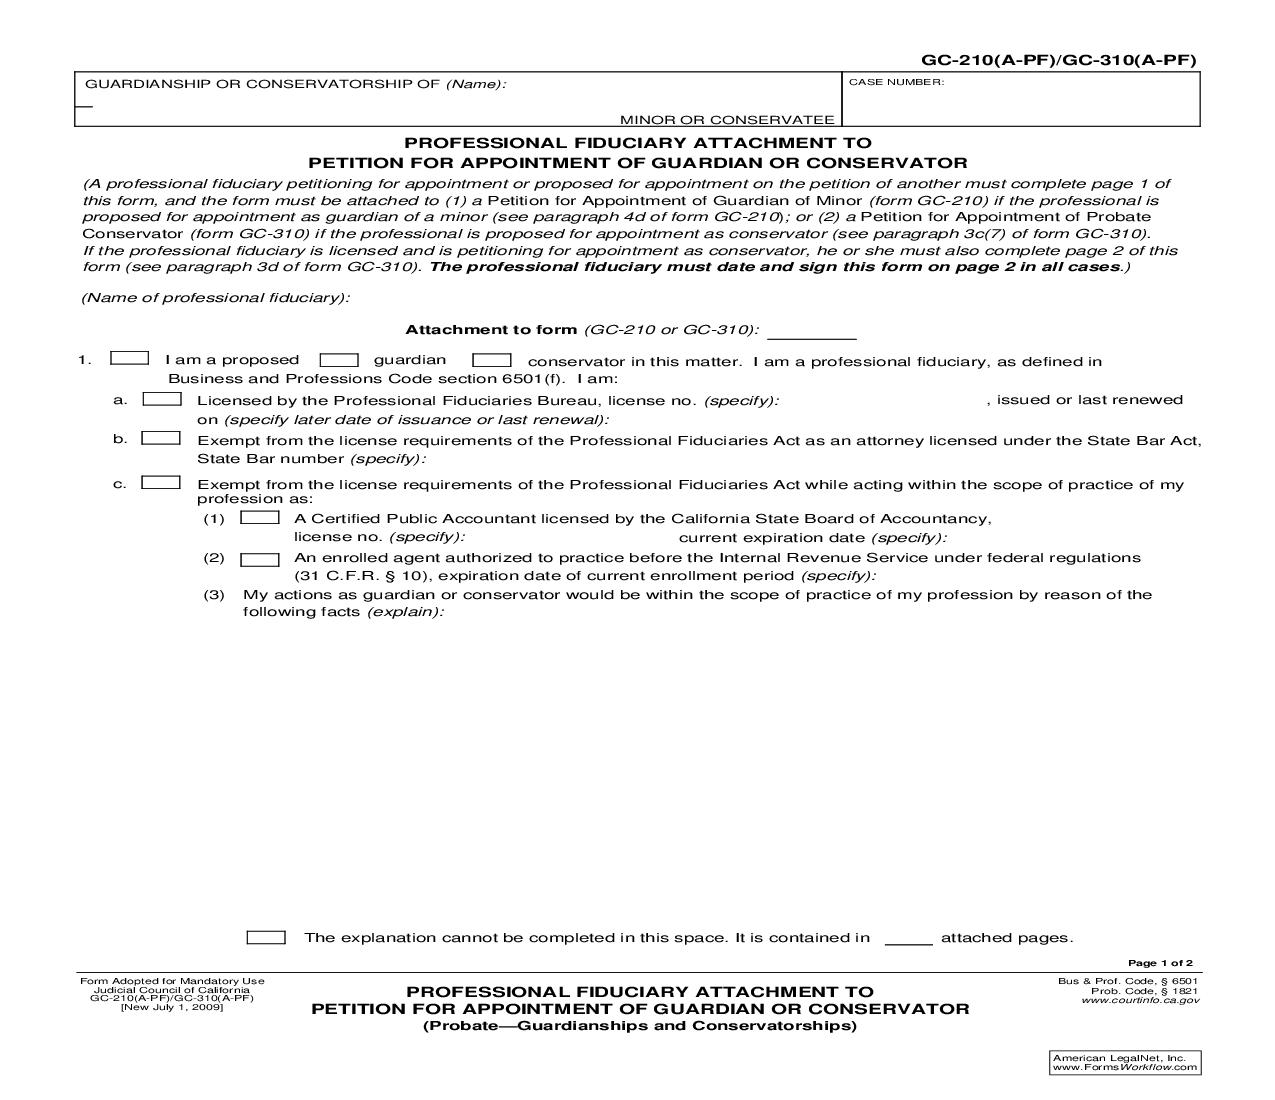 Professional Fiduciary Attachment To Petition For Appointment Of Guardian Or Conservator {GC-210(A-PF) GC-310(A-PF)} | Pdf Fpdf Doc Docx | California